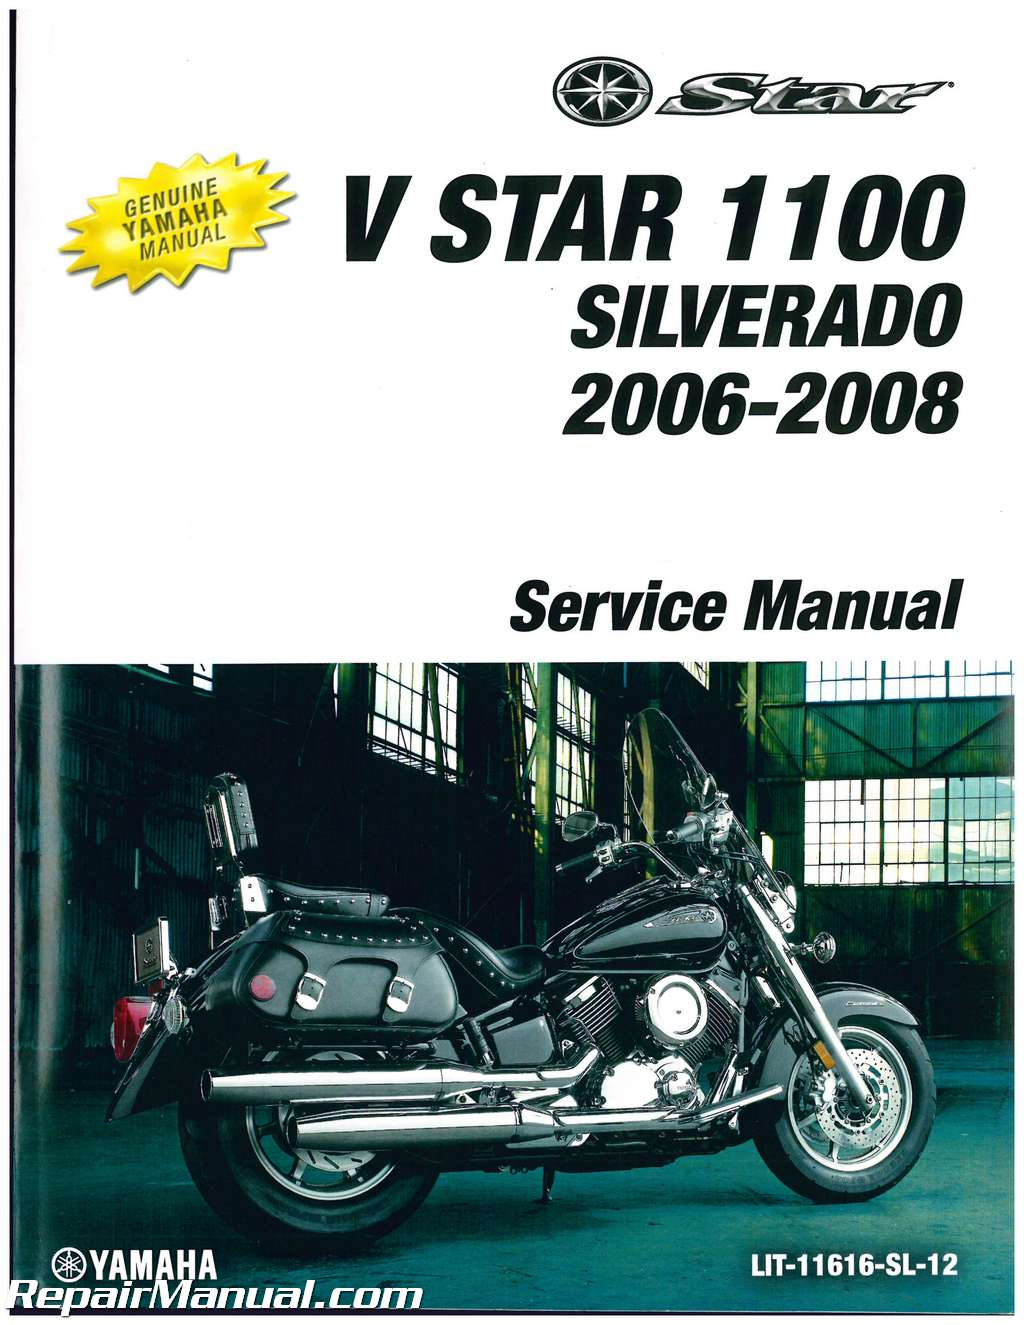 2008 yamaha v star 1100 service manual pdf